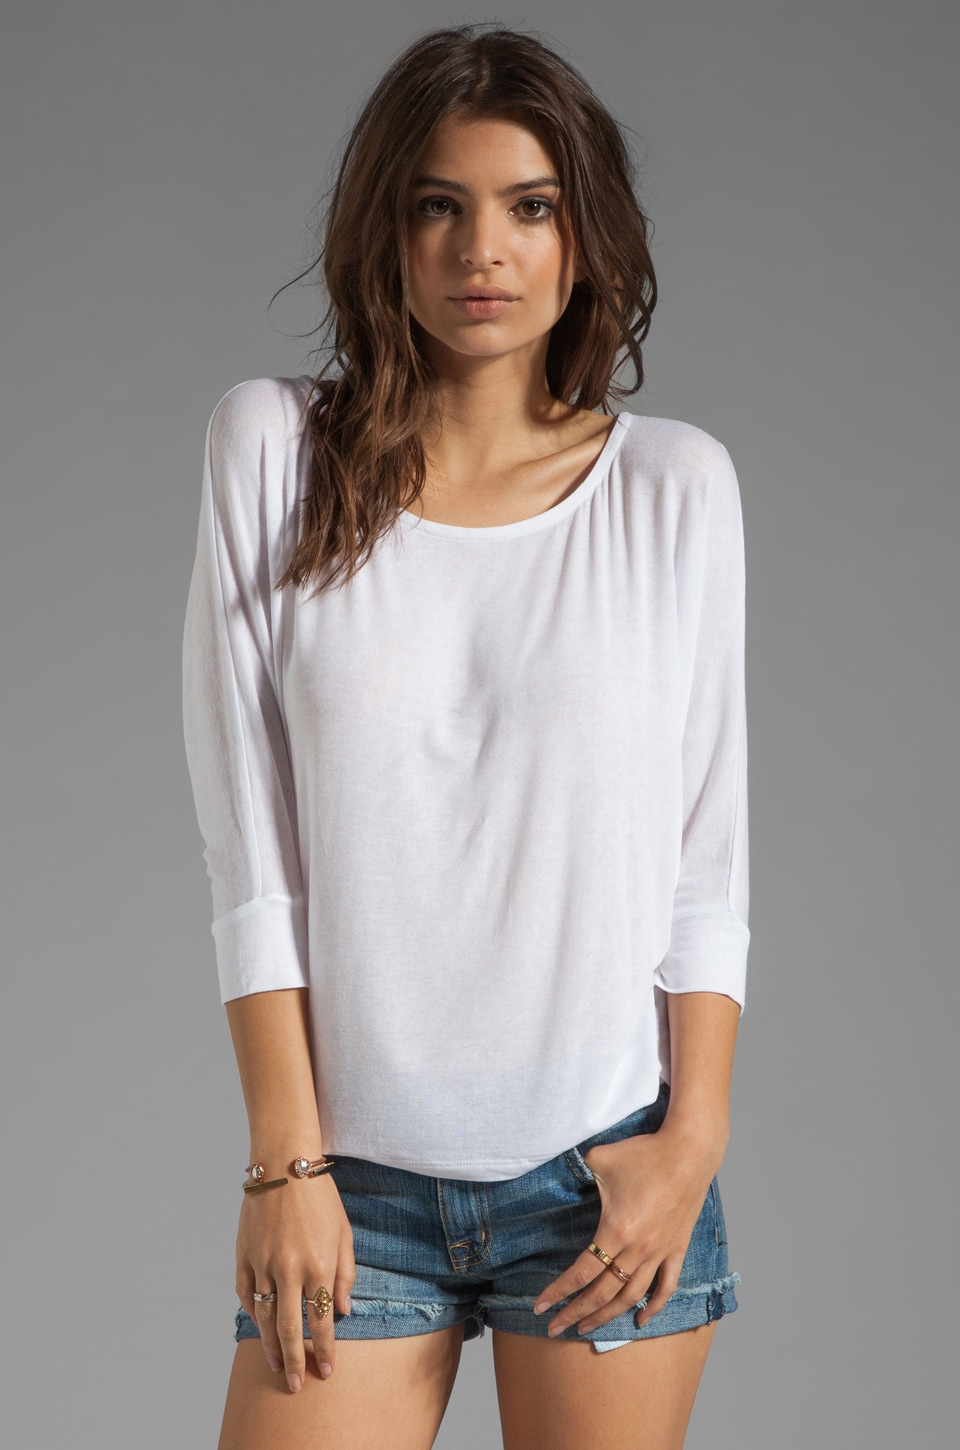 Splendid Drapey Lux Jersey Slub Top in White